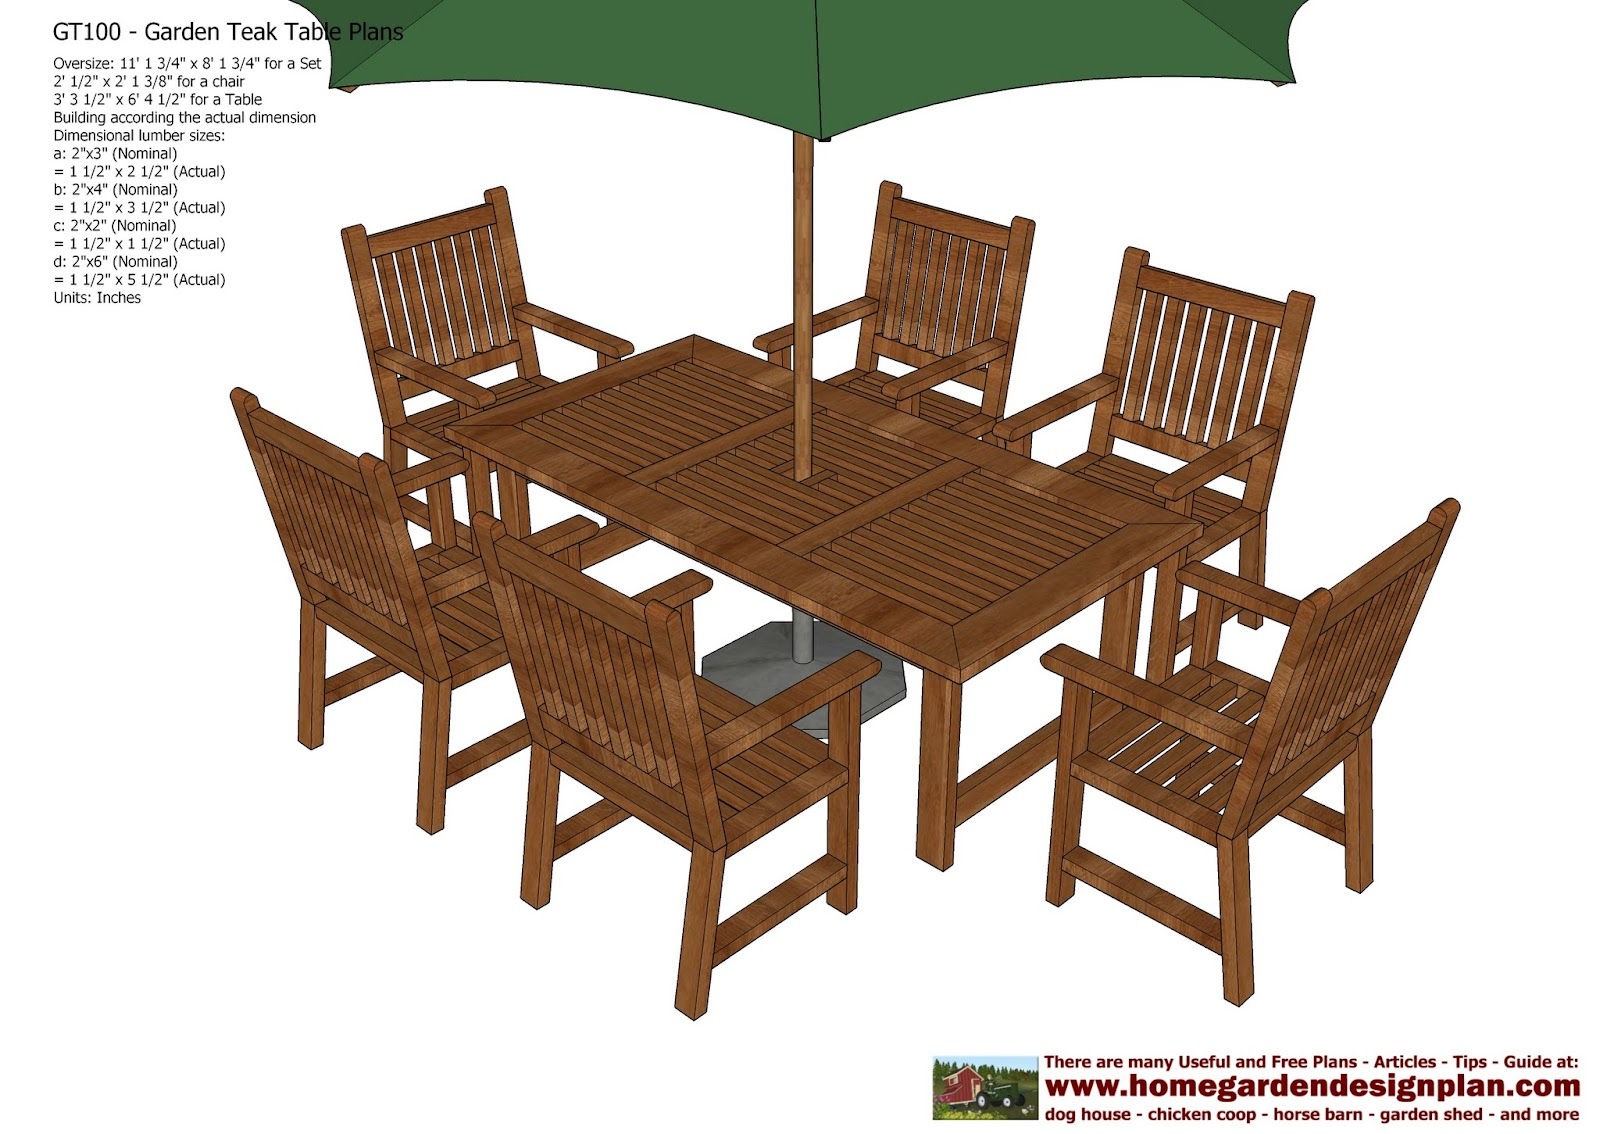 Garden Chair Design Plans Lifts For Stairs Home Gt100 Teak Tables